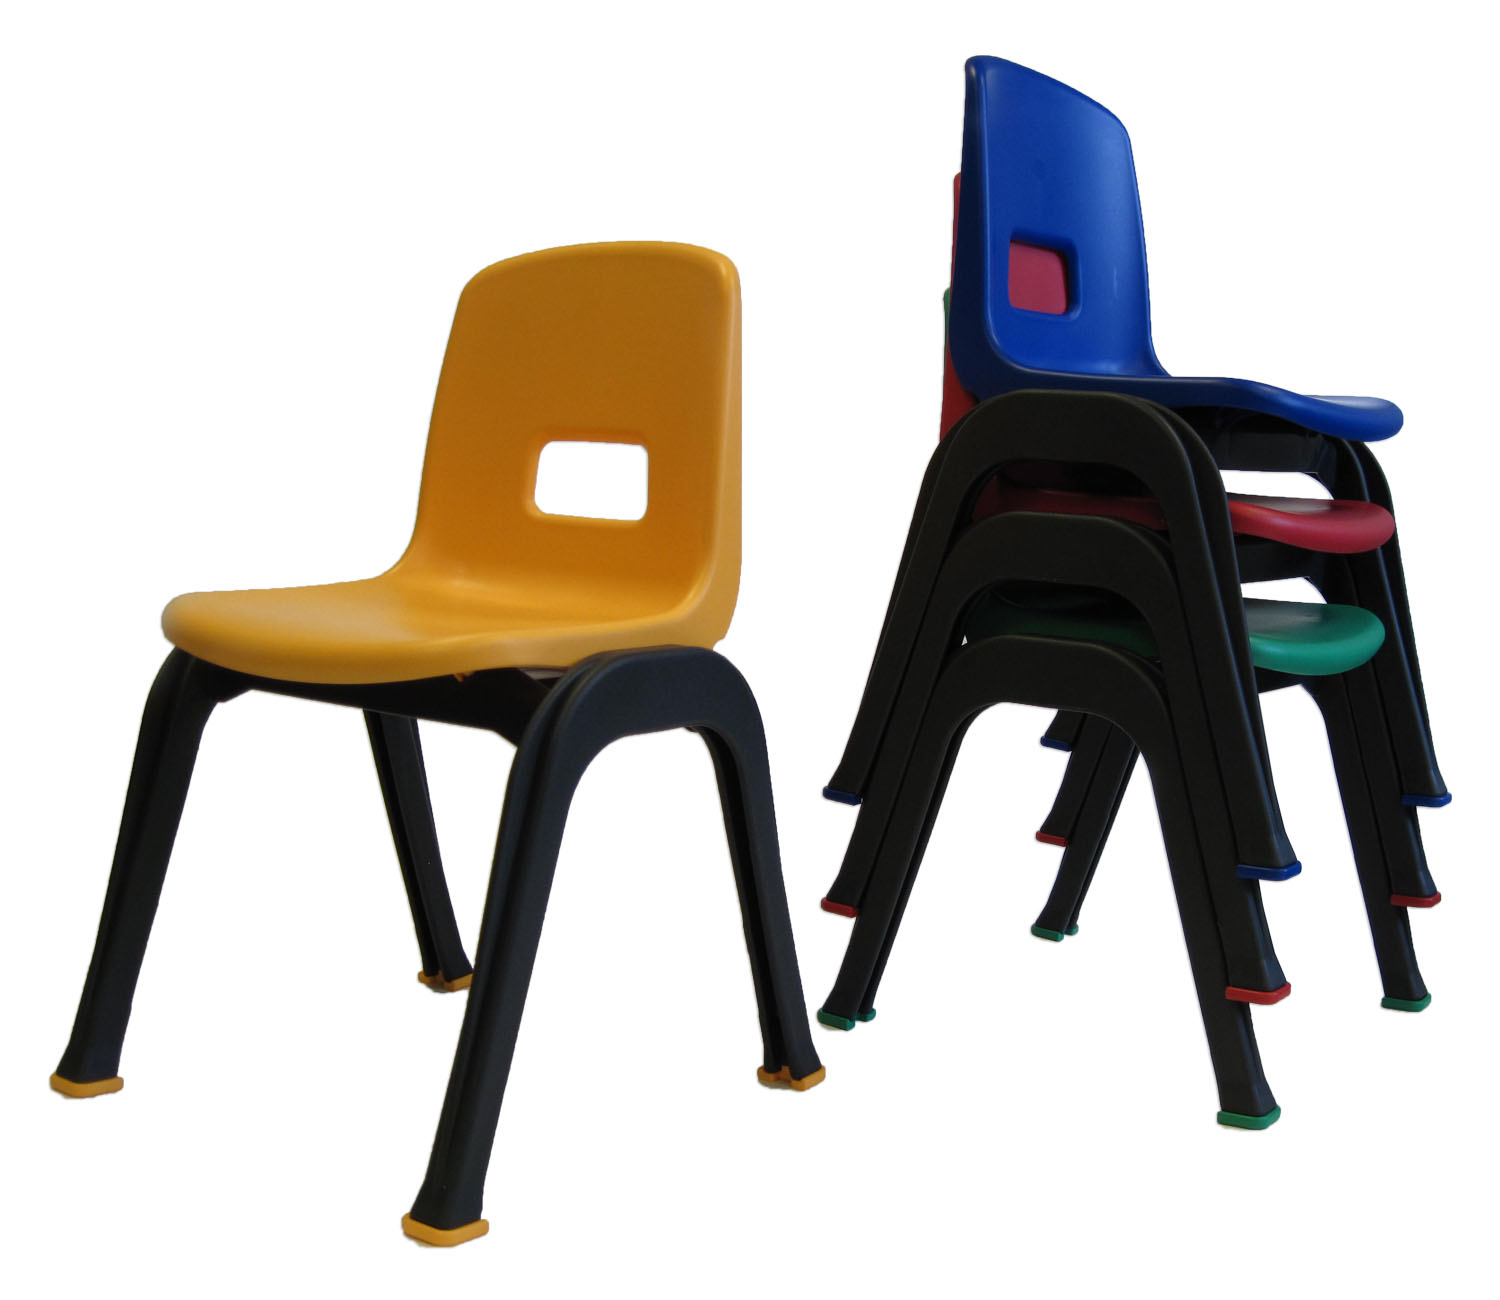 "Drake Corp D130 set of 4 Kid chair, 12"", multicolor, gray frames, one blue, one red, one yellow, one green seats, recommended fo"